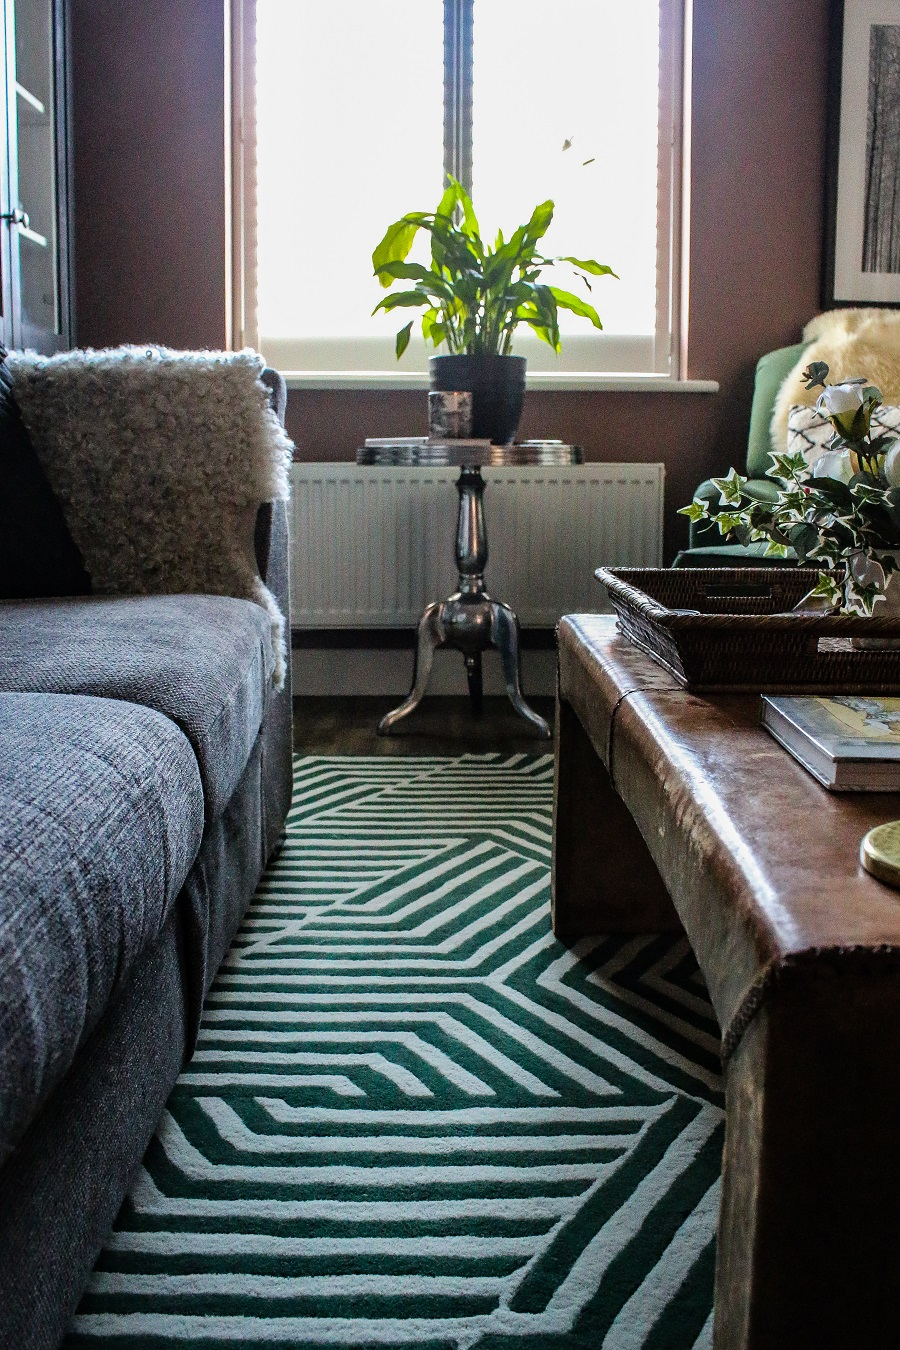 A Stunning New Bespoke Rug for the Living Room